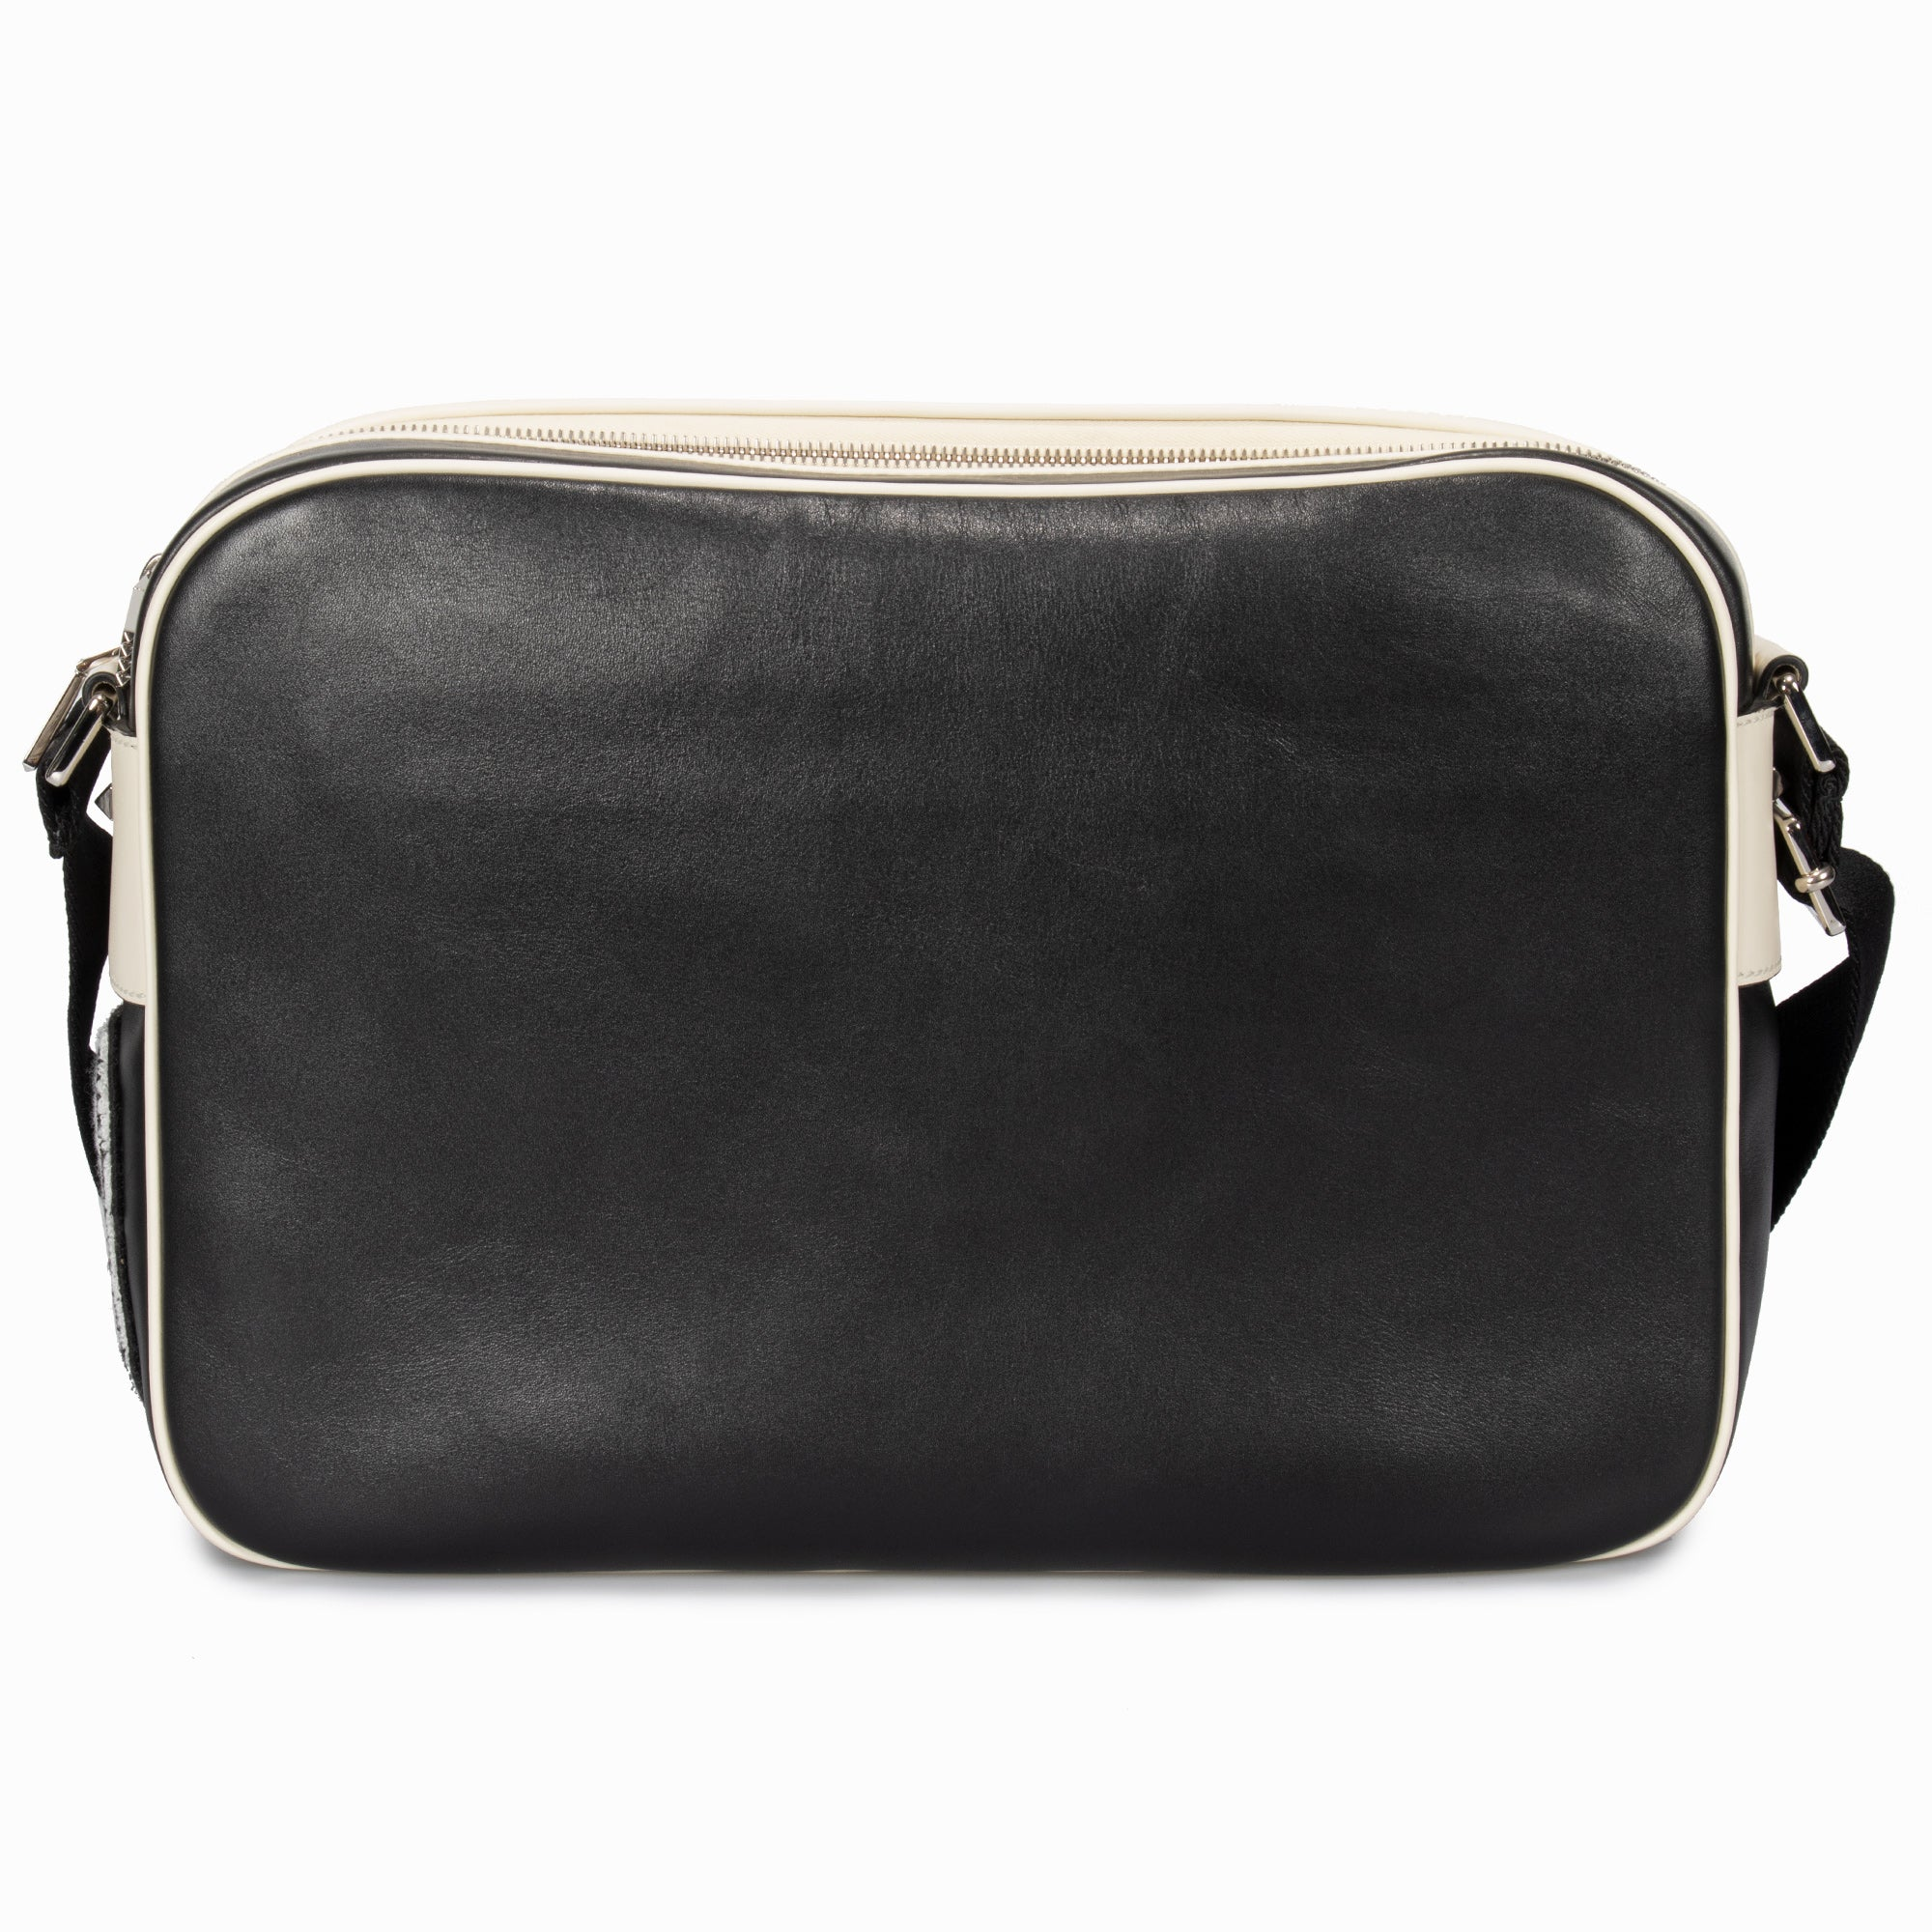 Valentino Black Leather Messenger Bag with Logo Applique